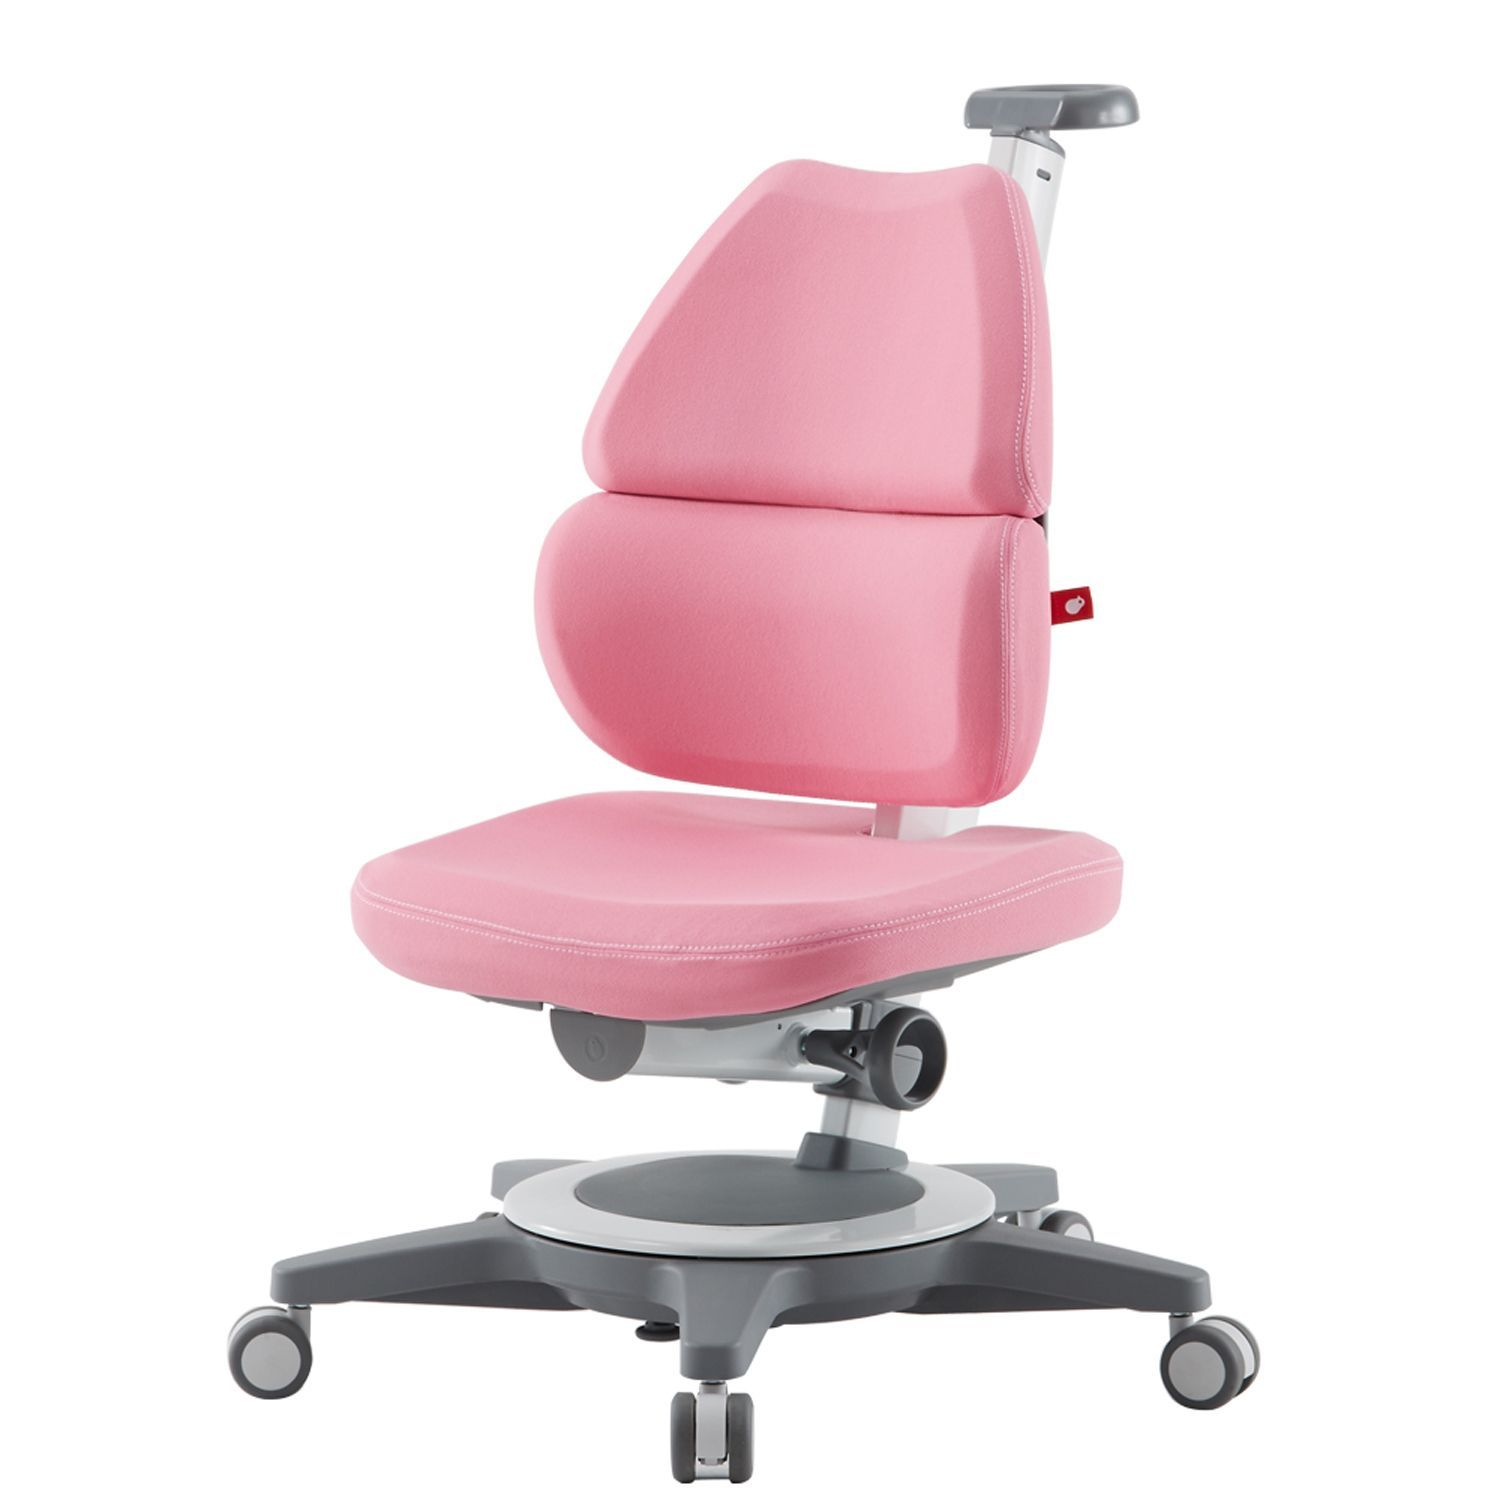 kid 2 youth kid s ergonomic desk chair pink kids s youth and desks